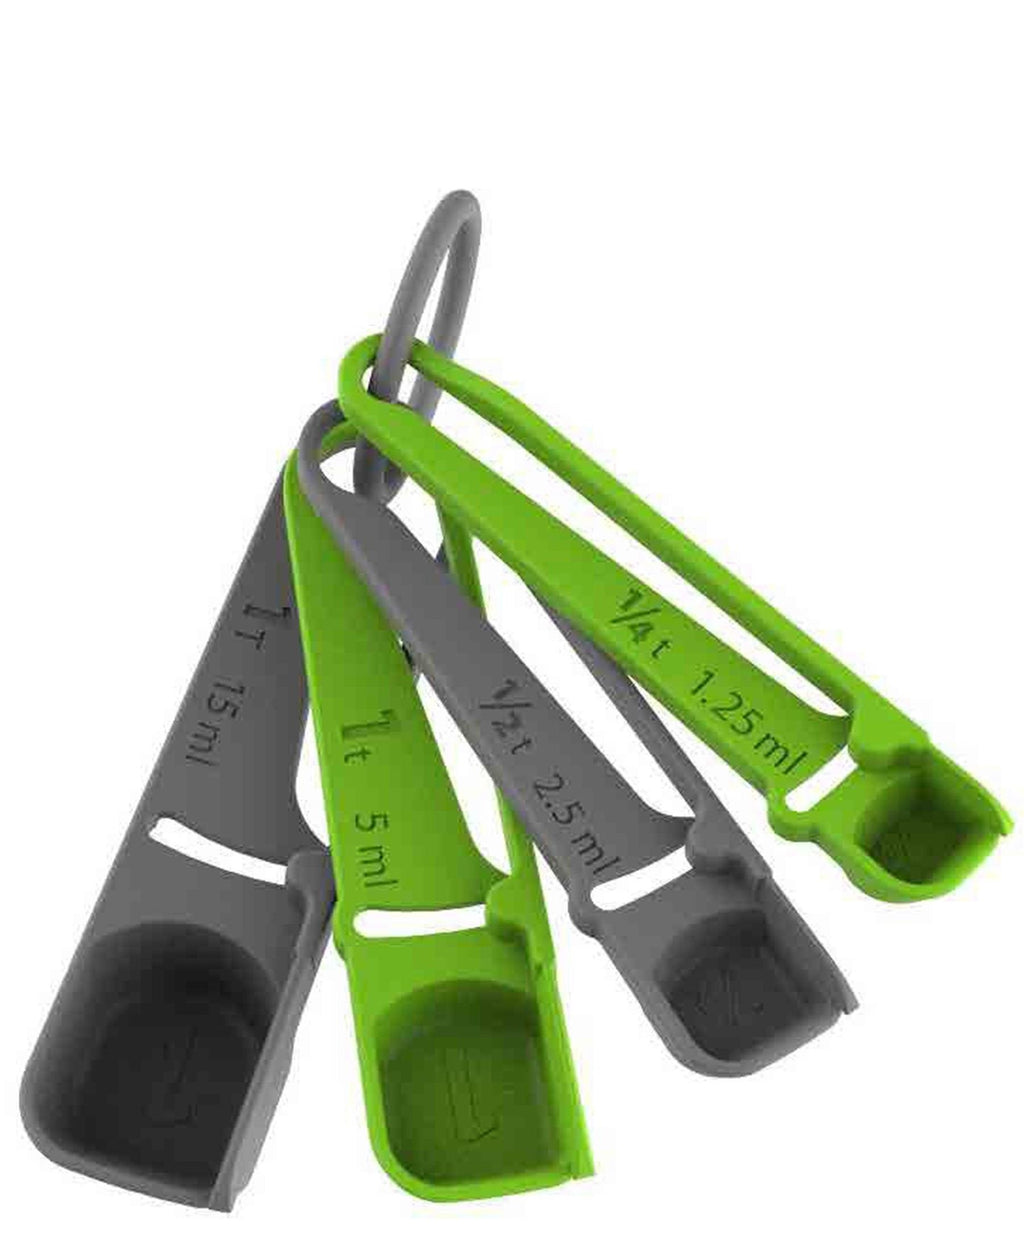 Progressive 4 Piece Levelling Measuring Spoons - Multi